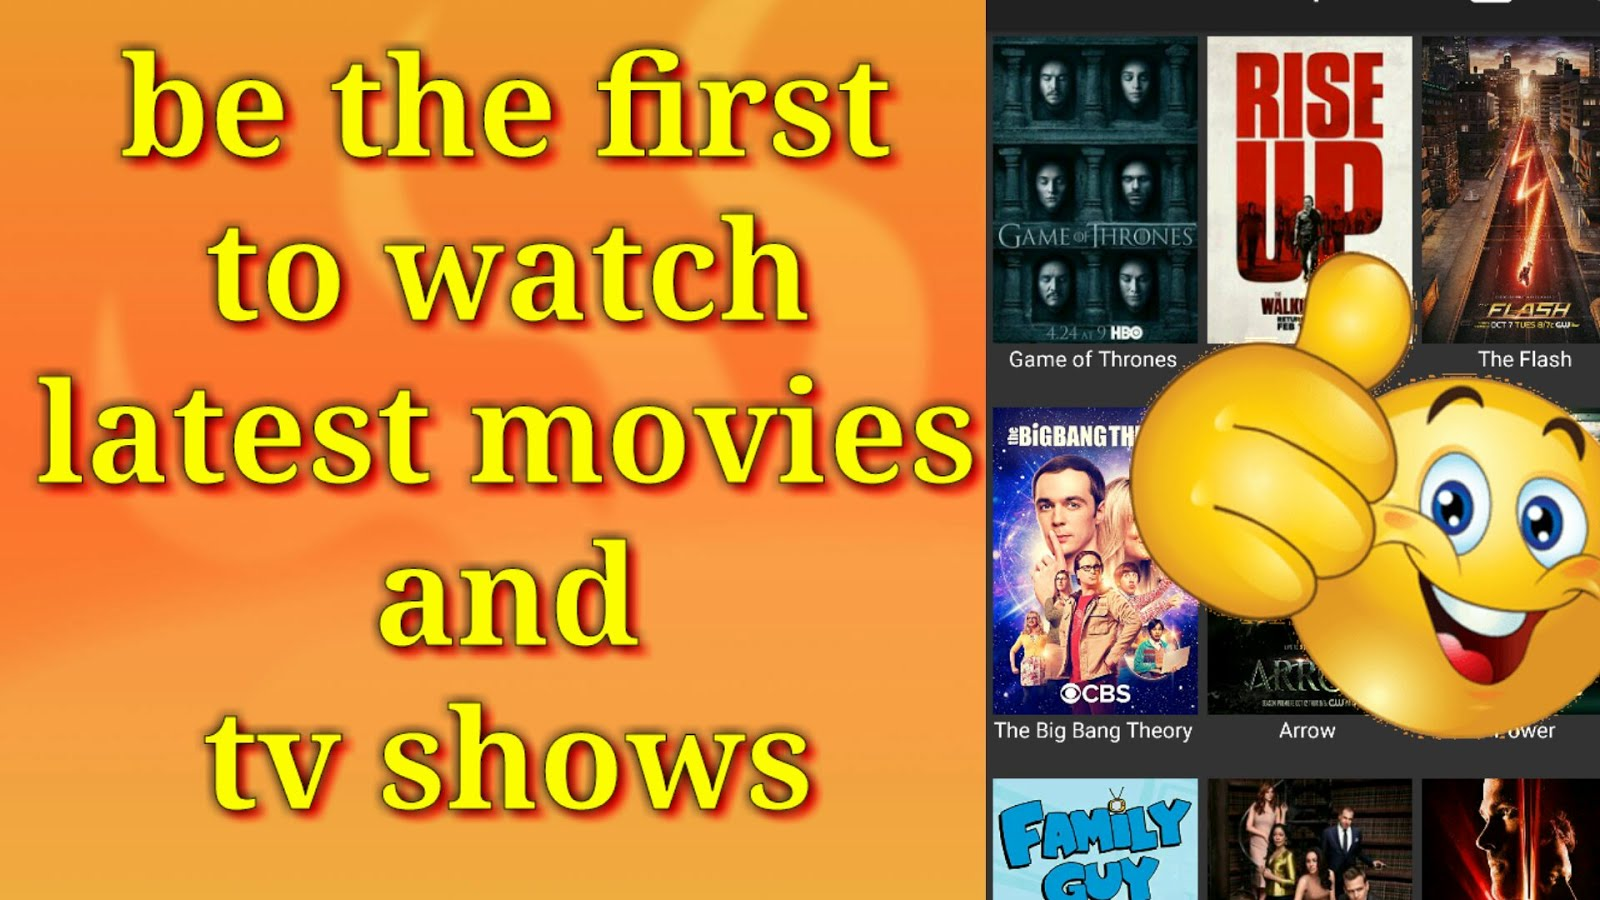 the best Android app to watch latest movies and TV shows on